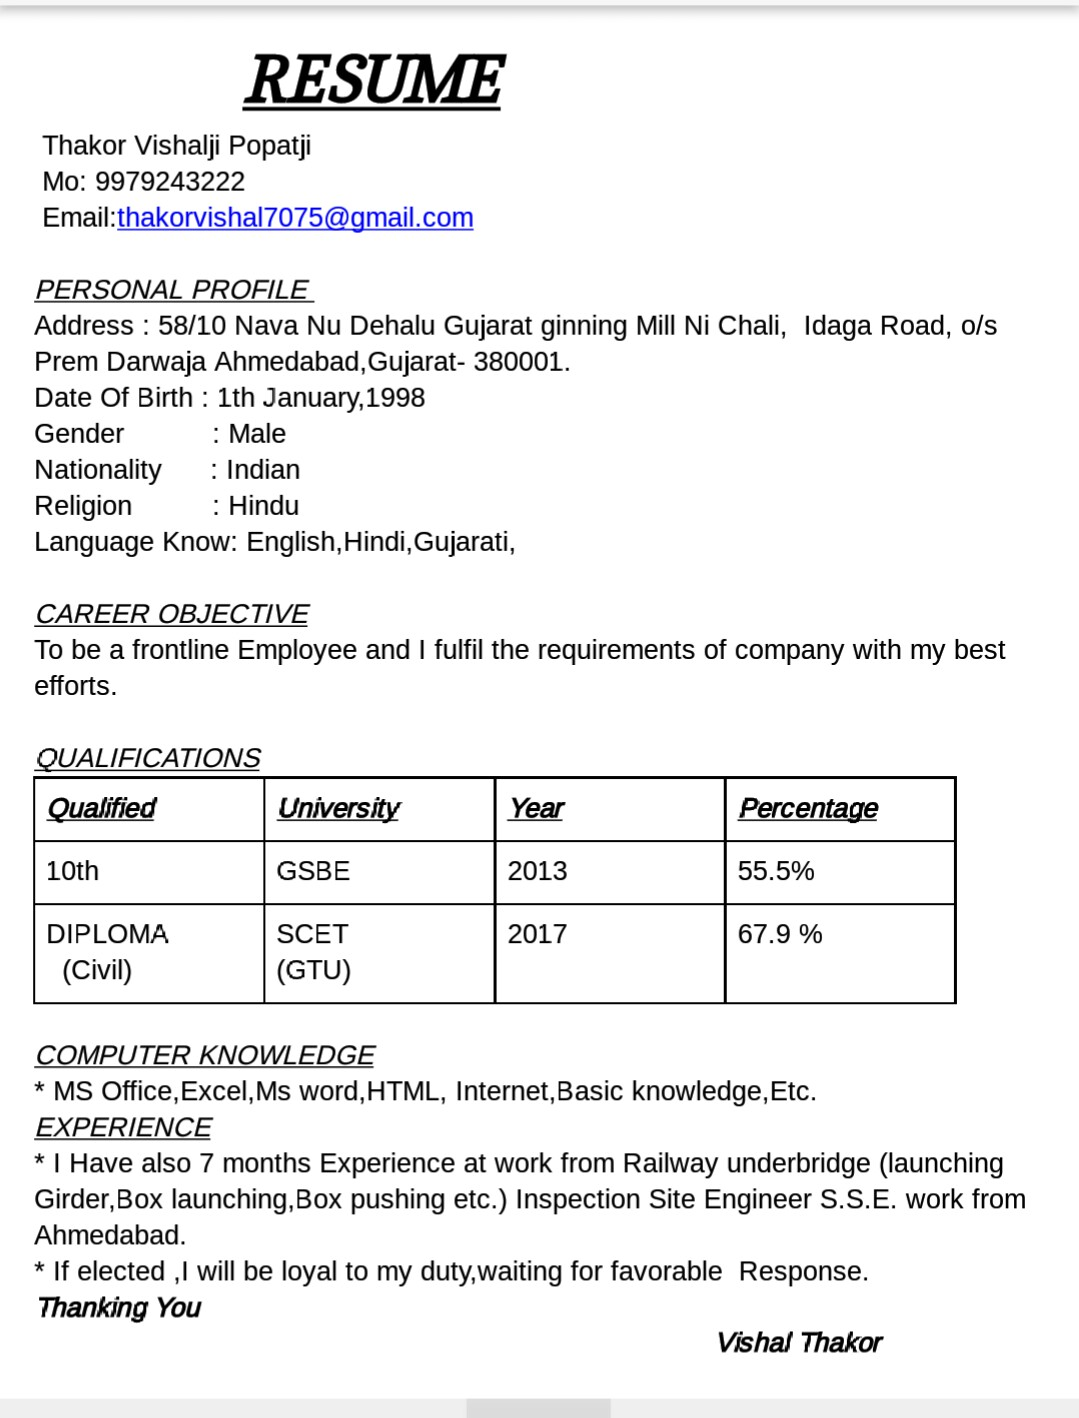 RE: GMR Infrastructuer Hiring Civil Engineers at salary of 15-22.5lacs